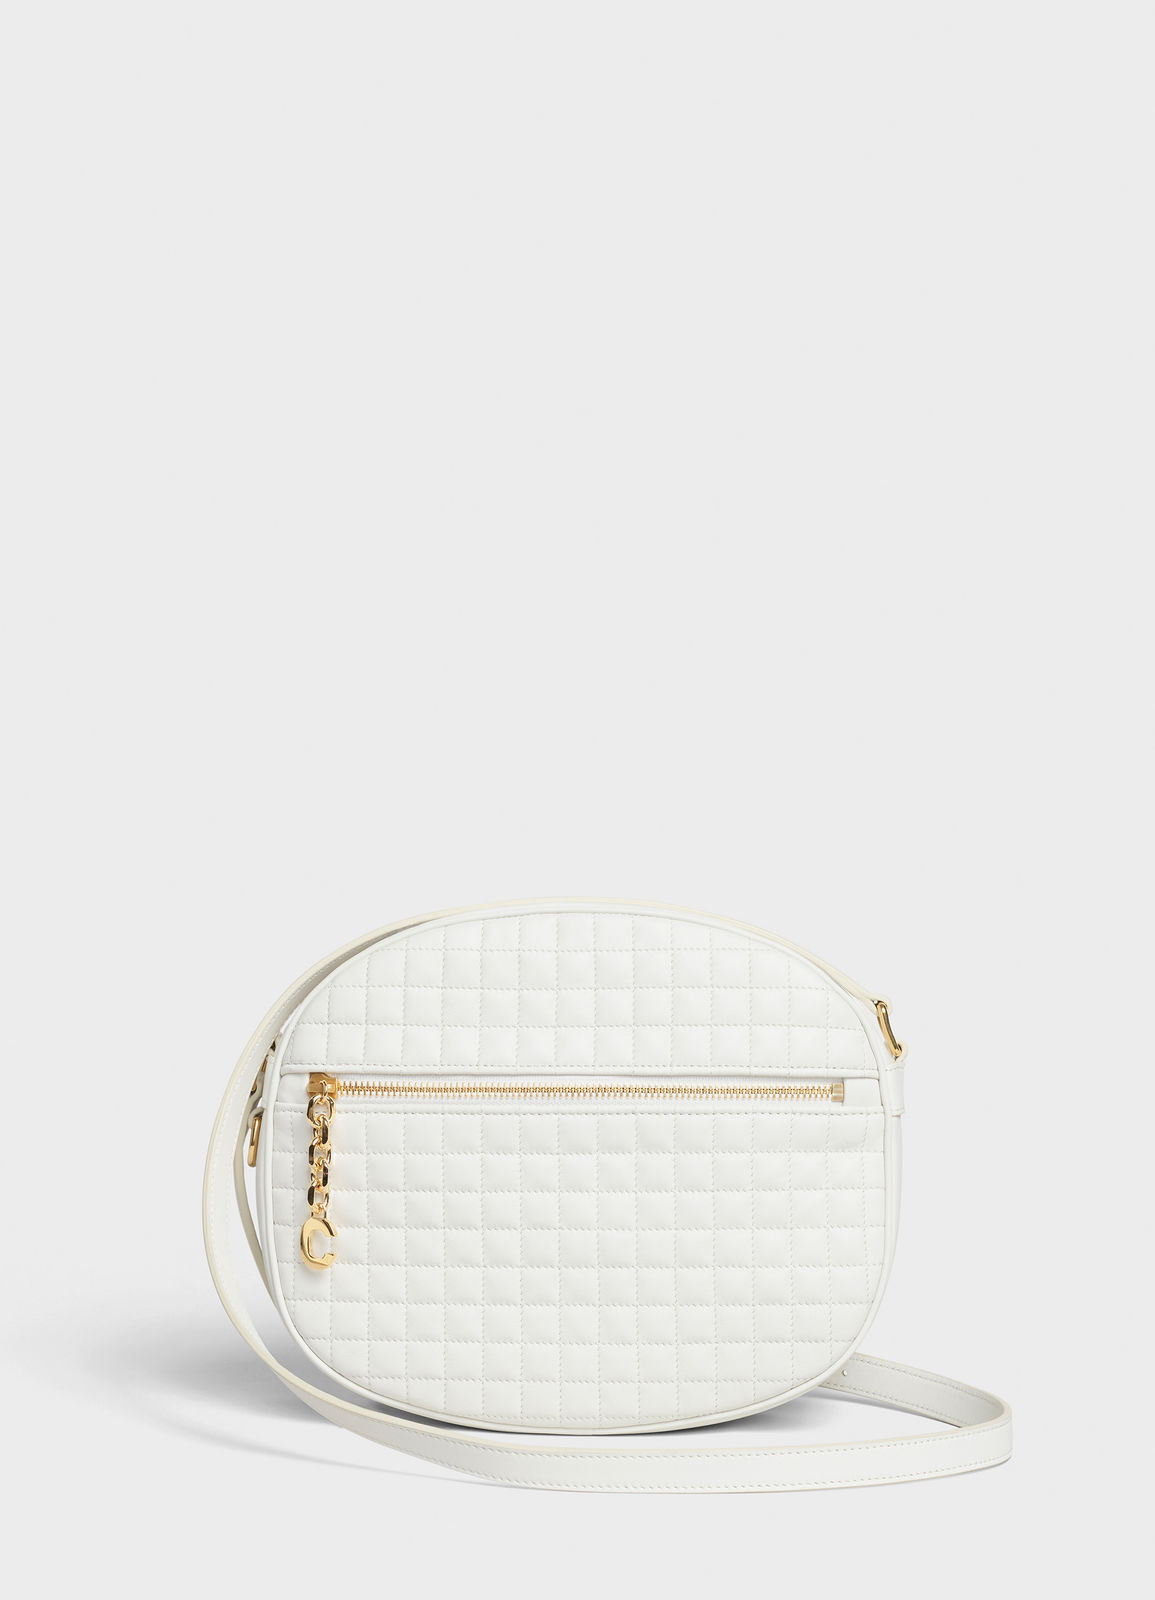 CELINE CROSS BODY MEDIUM C CHARM BAG IN QUILTED CALFSKIN 188353 white